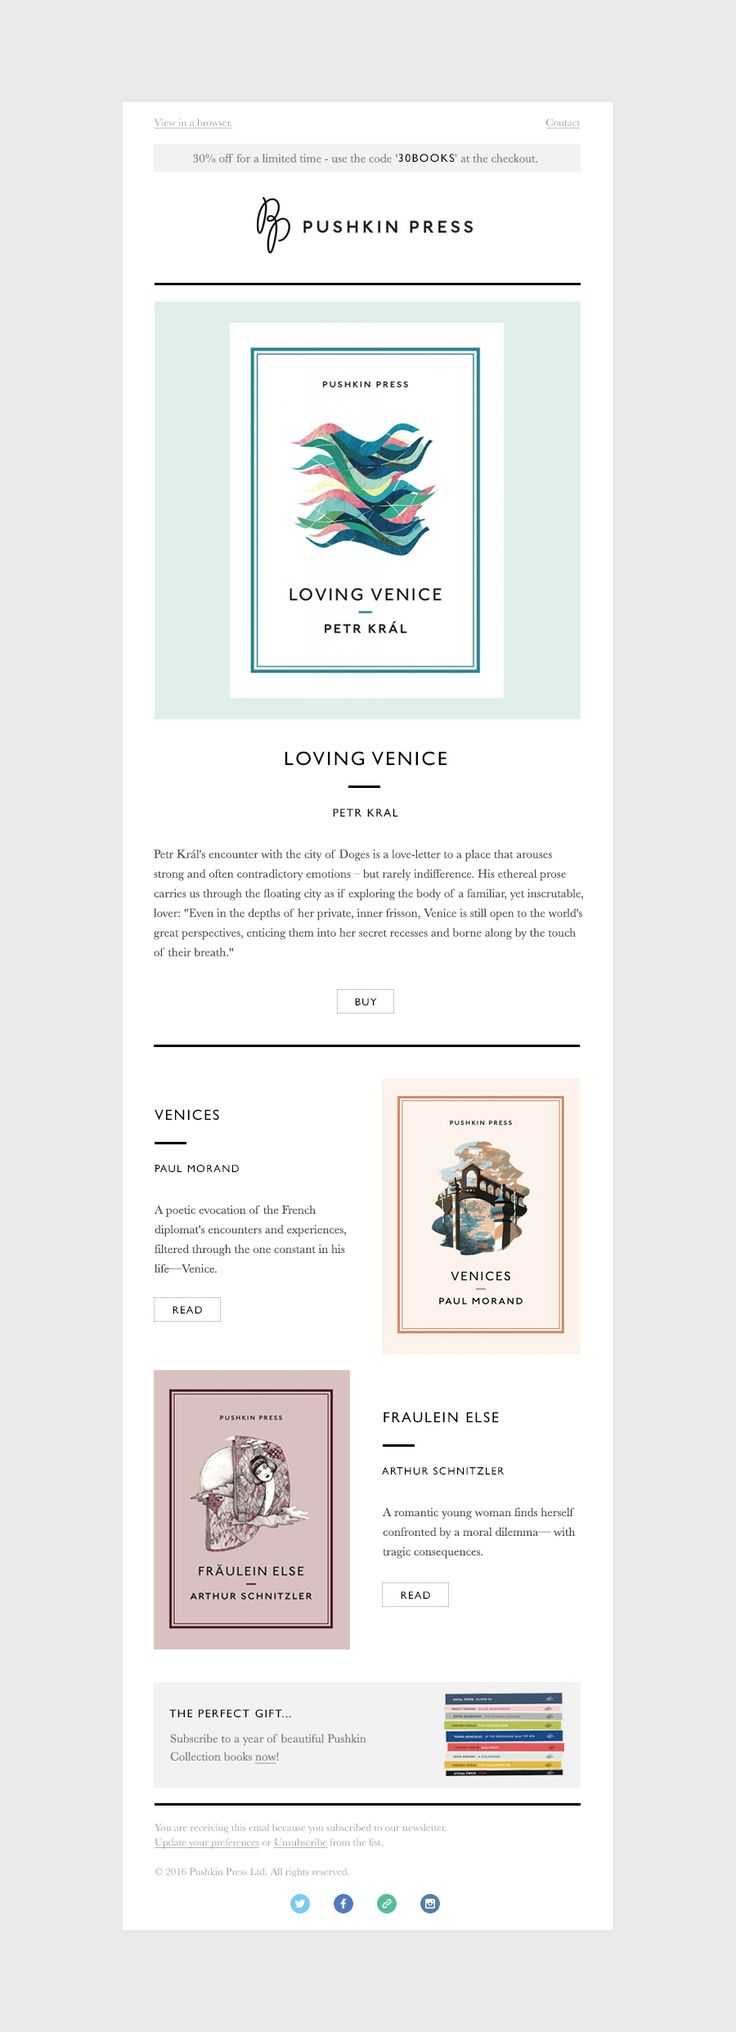 12 best images about infolettre on pinterest cleanses starbucks